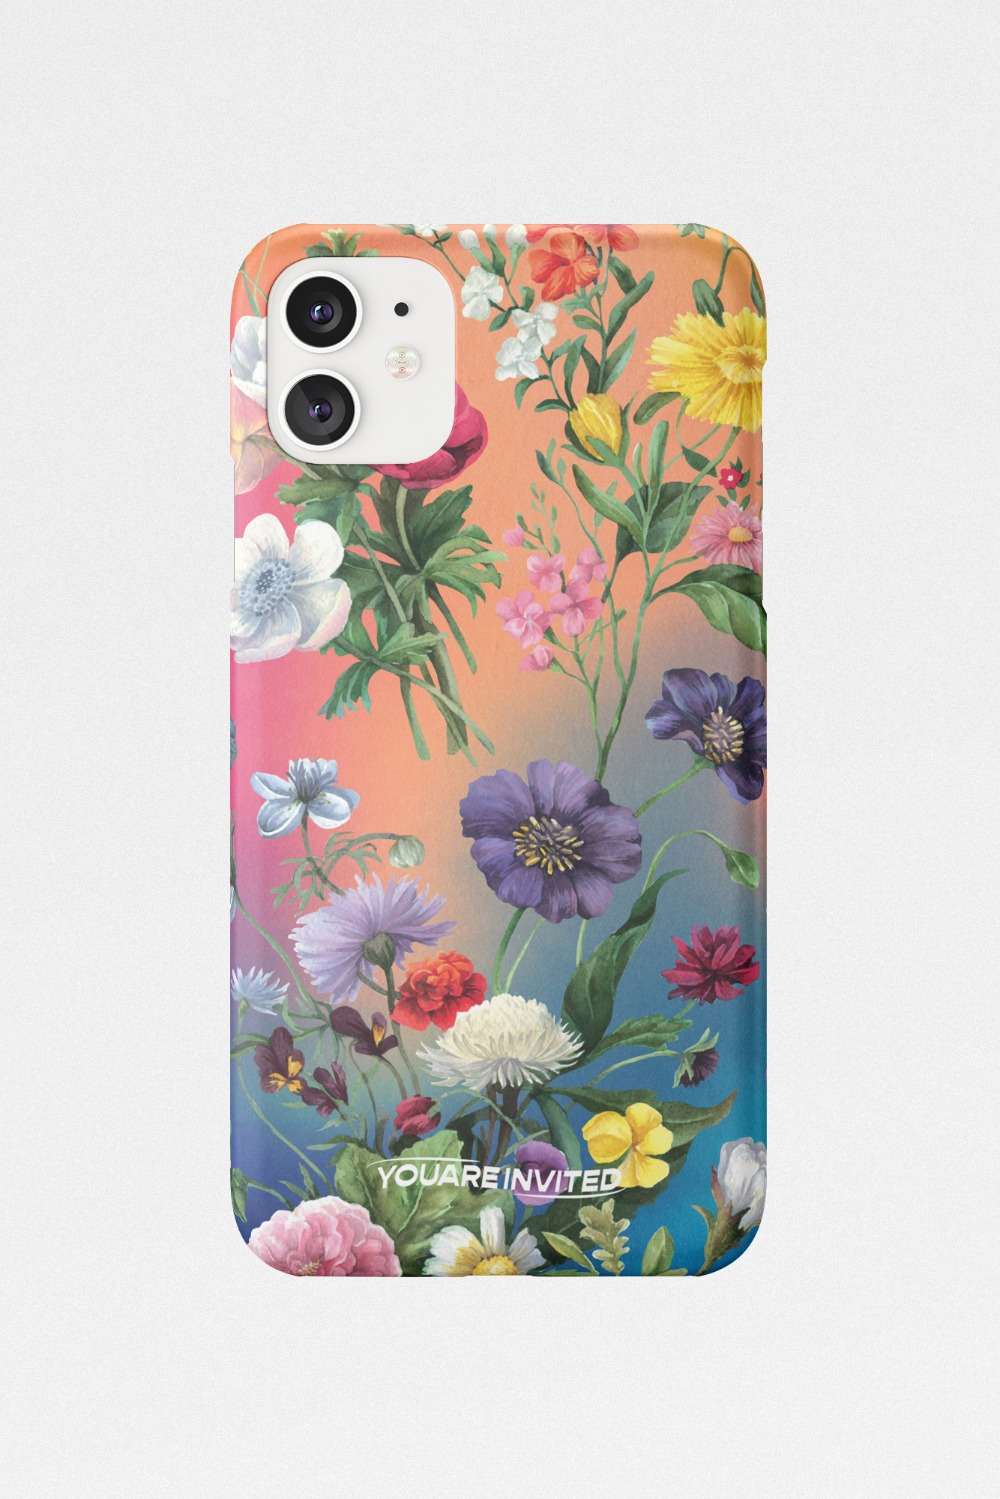 Flower garden gradation hard case